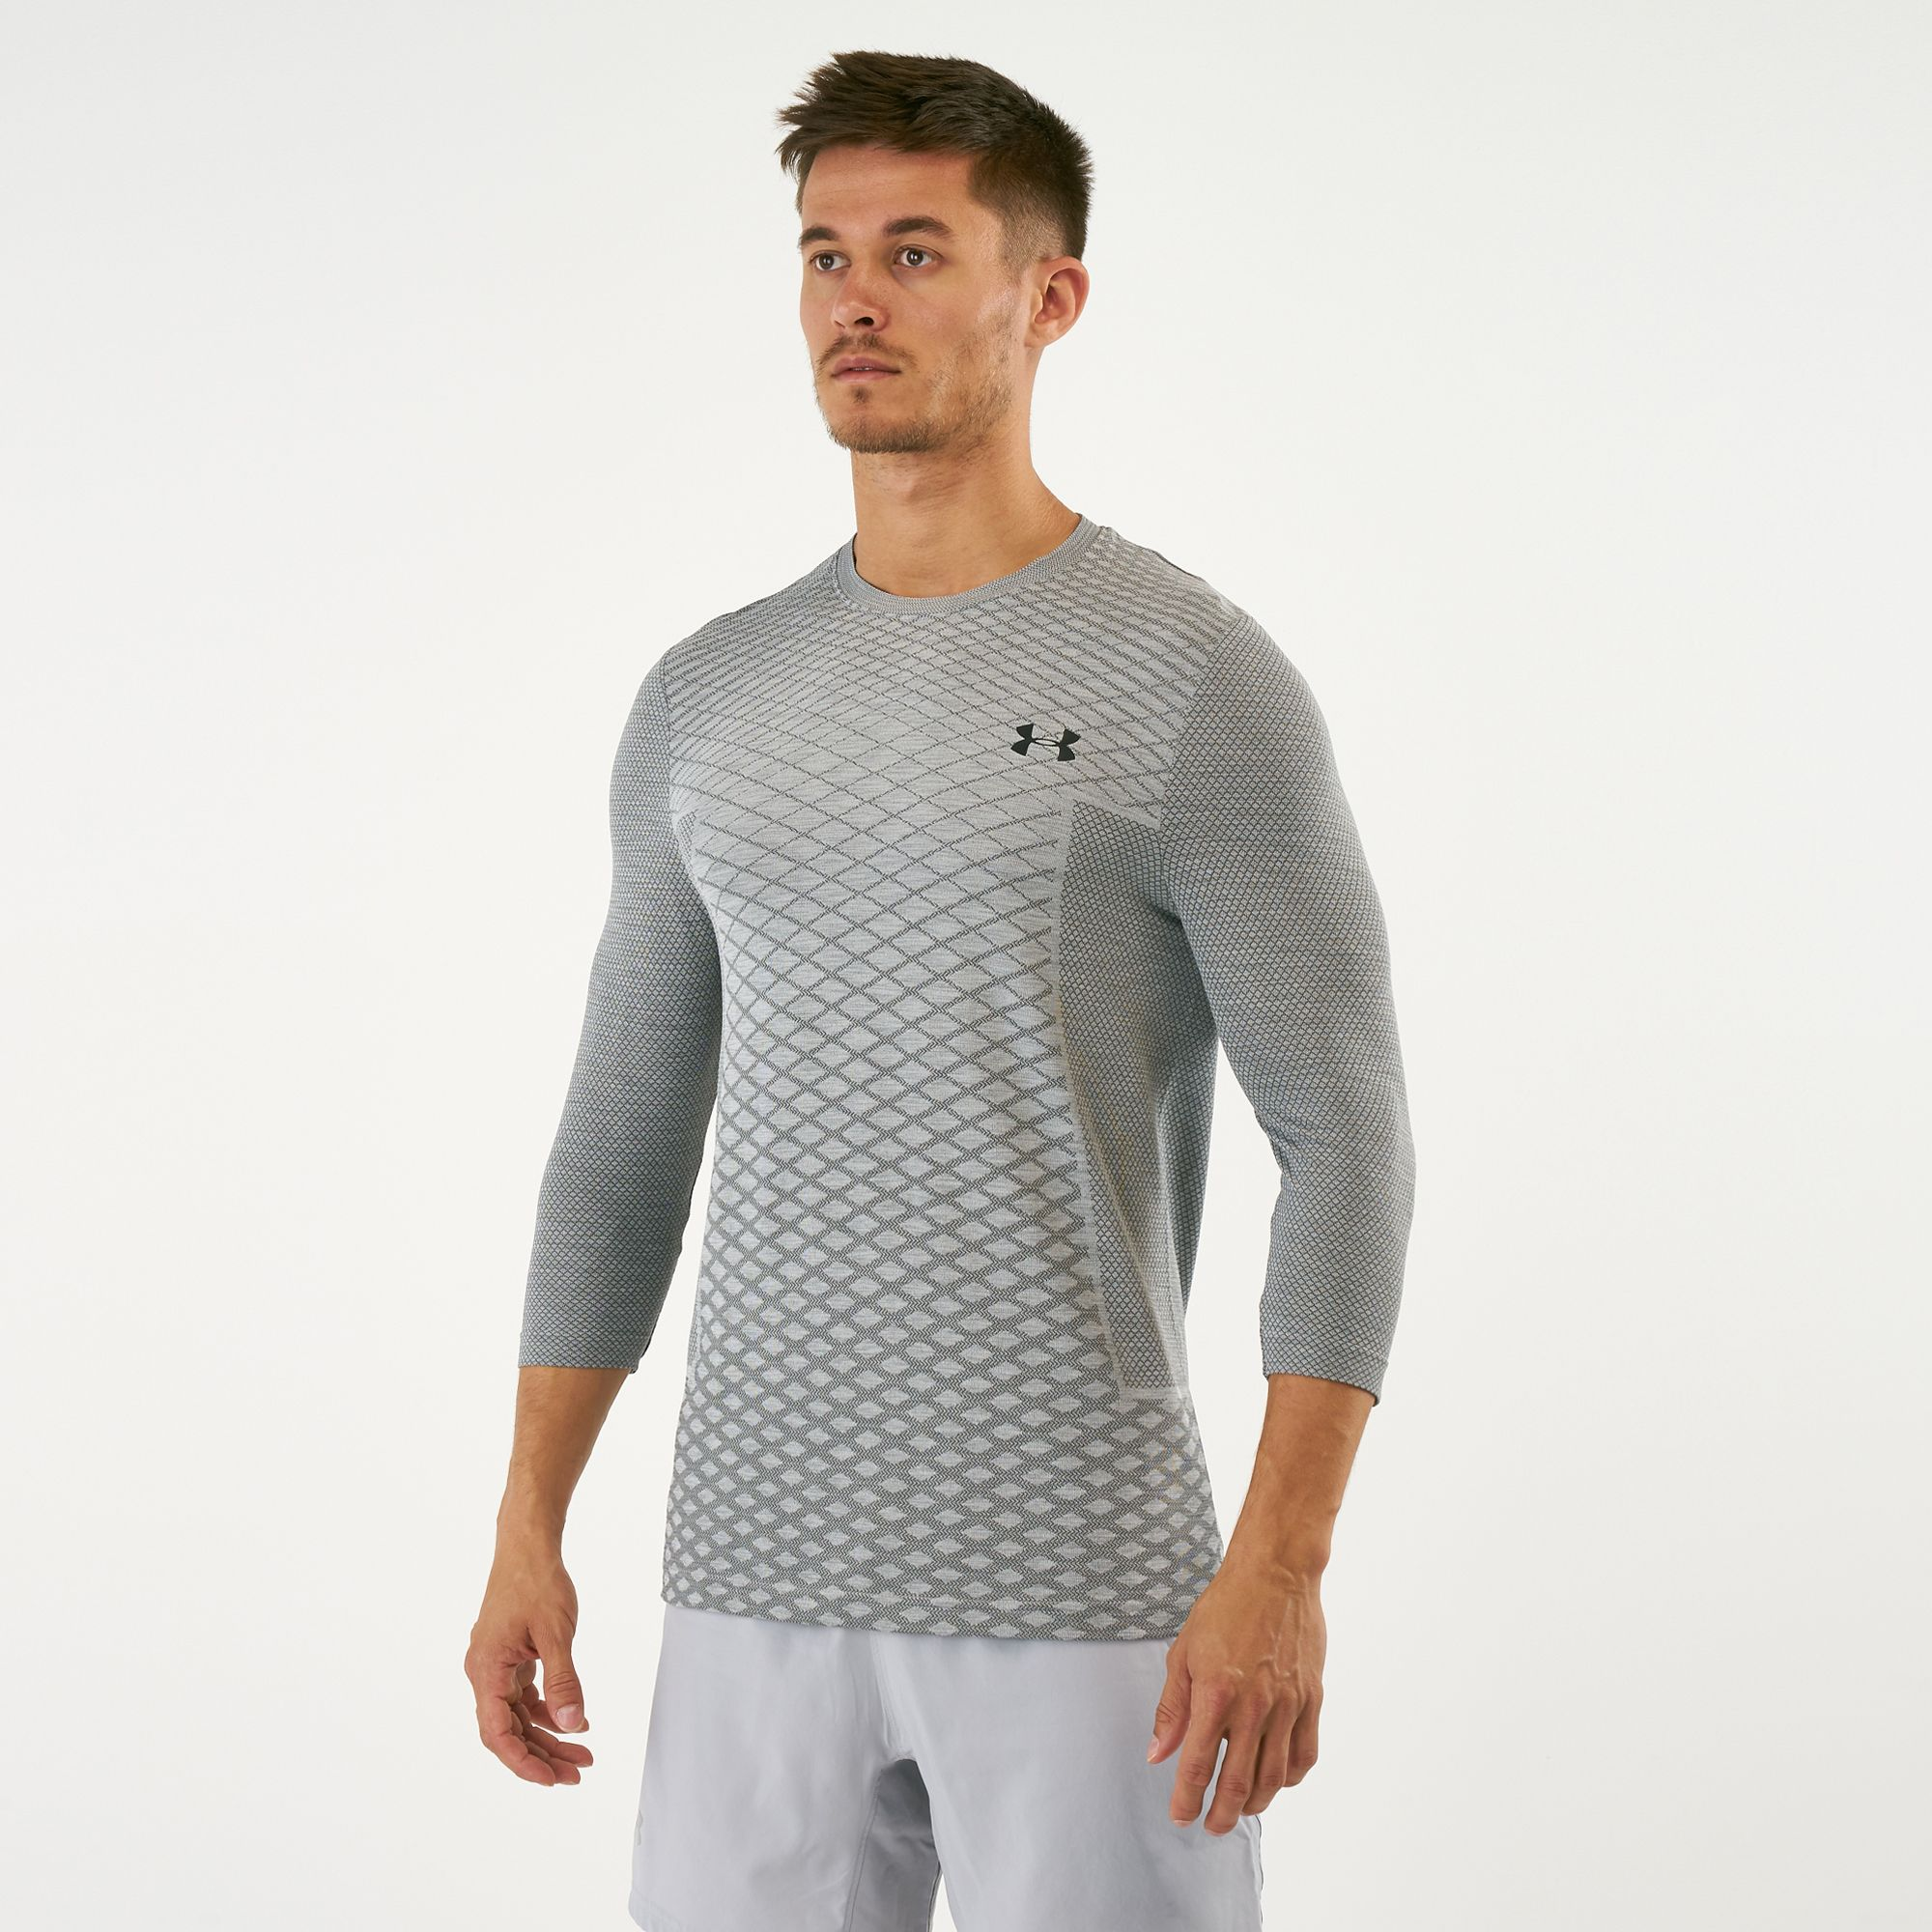 c44d5e52a Under Armour Men's Vanish Seamless 3/4 Sleeved T-Shirt | T-Shirts ...